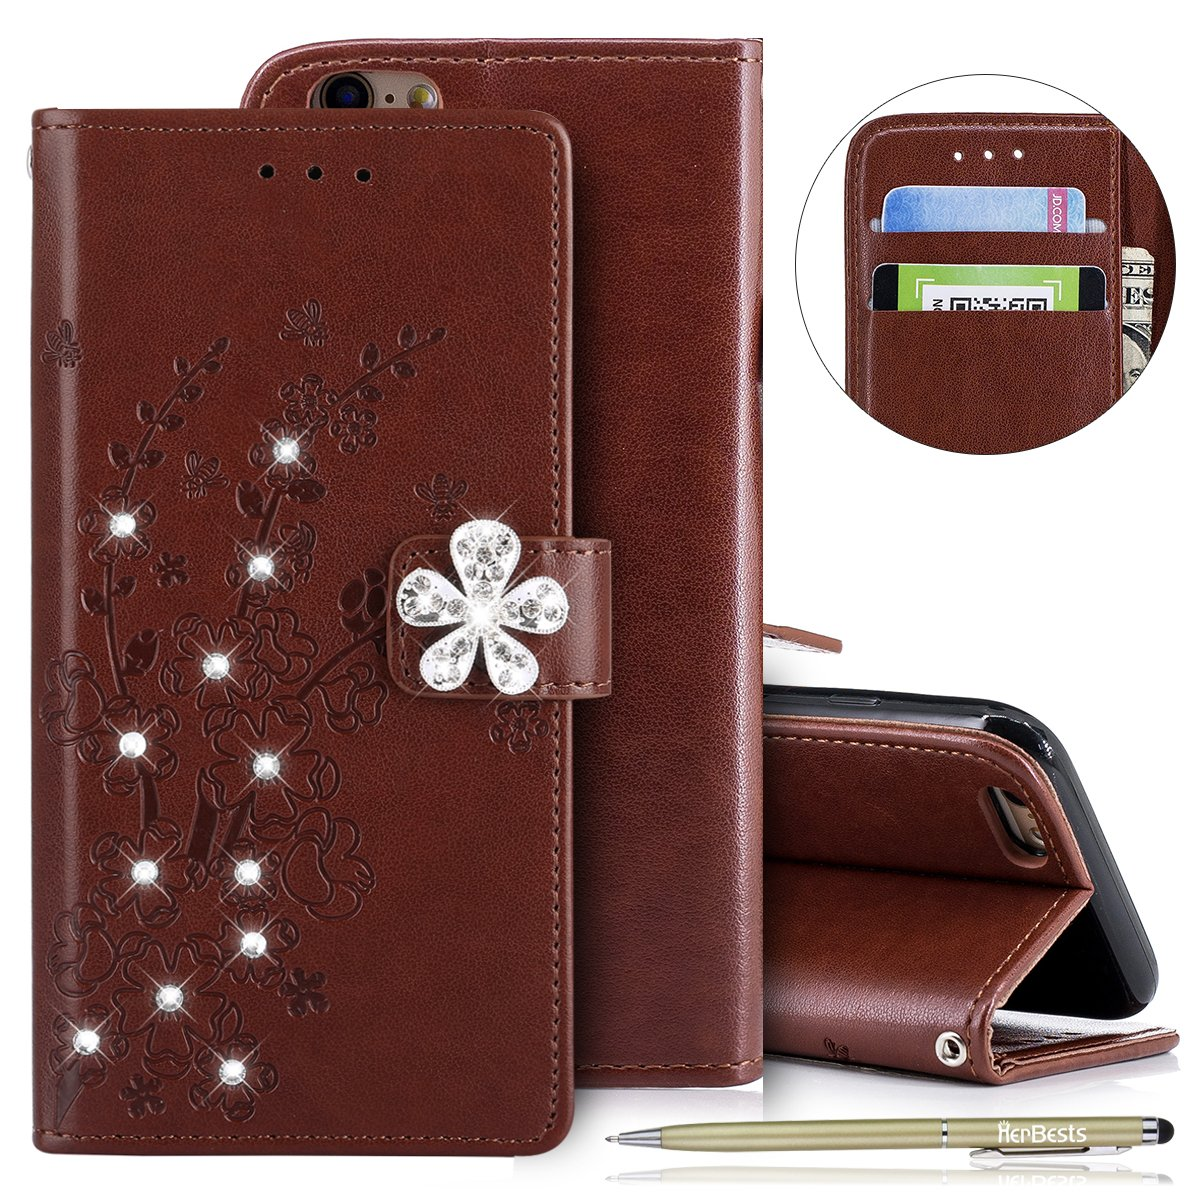 Herbests Compatible with iPhone 6S 4.7 Wallet Case Glitter Diamond Bling Rhinestone Leather Cover Flip Cases 3D Flower Butterfly Embossed Cute Slim Shockproof Phone Cover Stand,Rose Gold